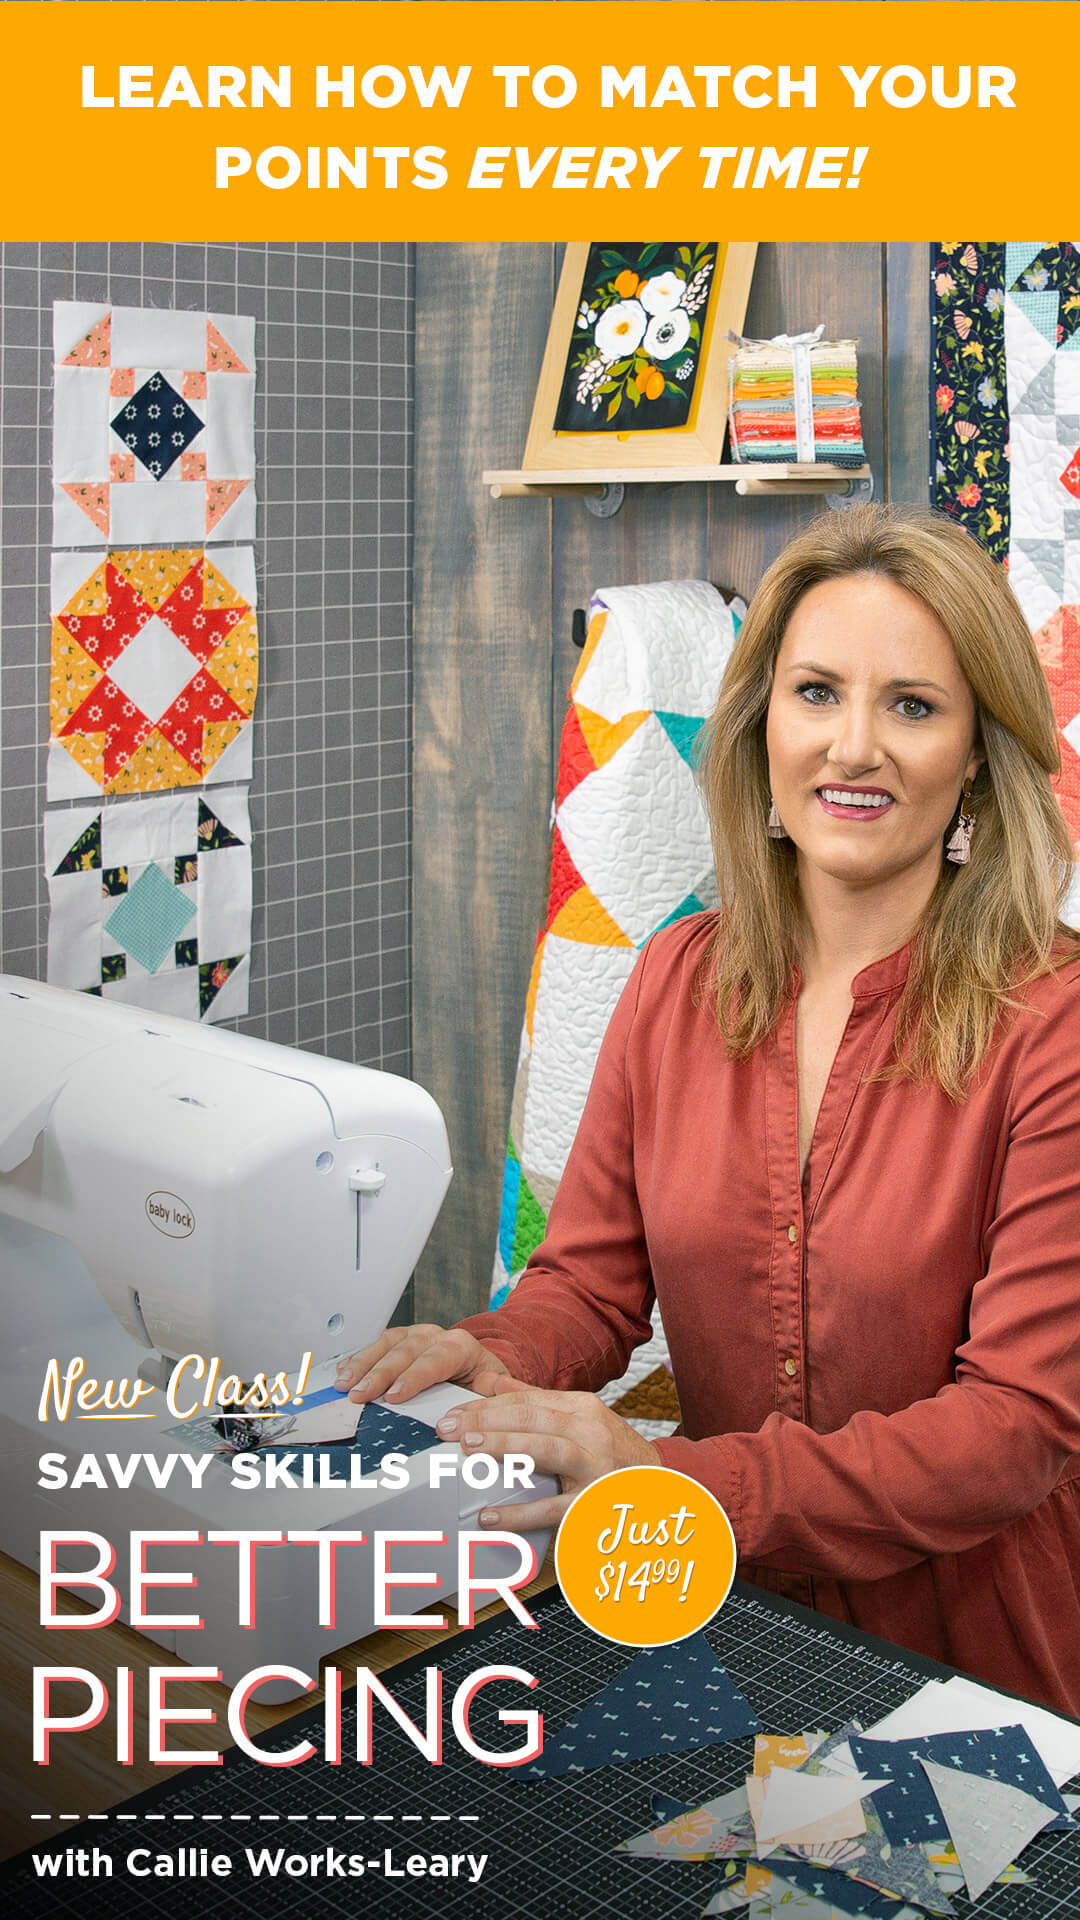 Savvy Skills for Better Piecing with Callie Works-Leary and Missouri Star Quilt Company